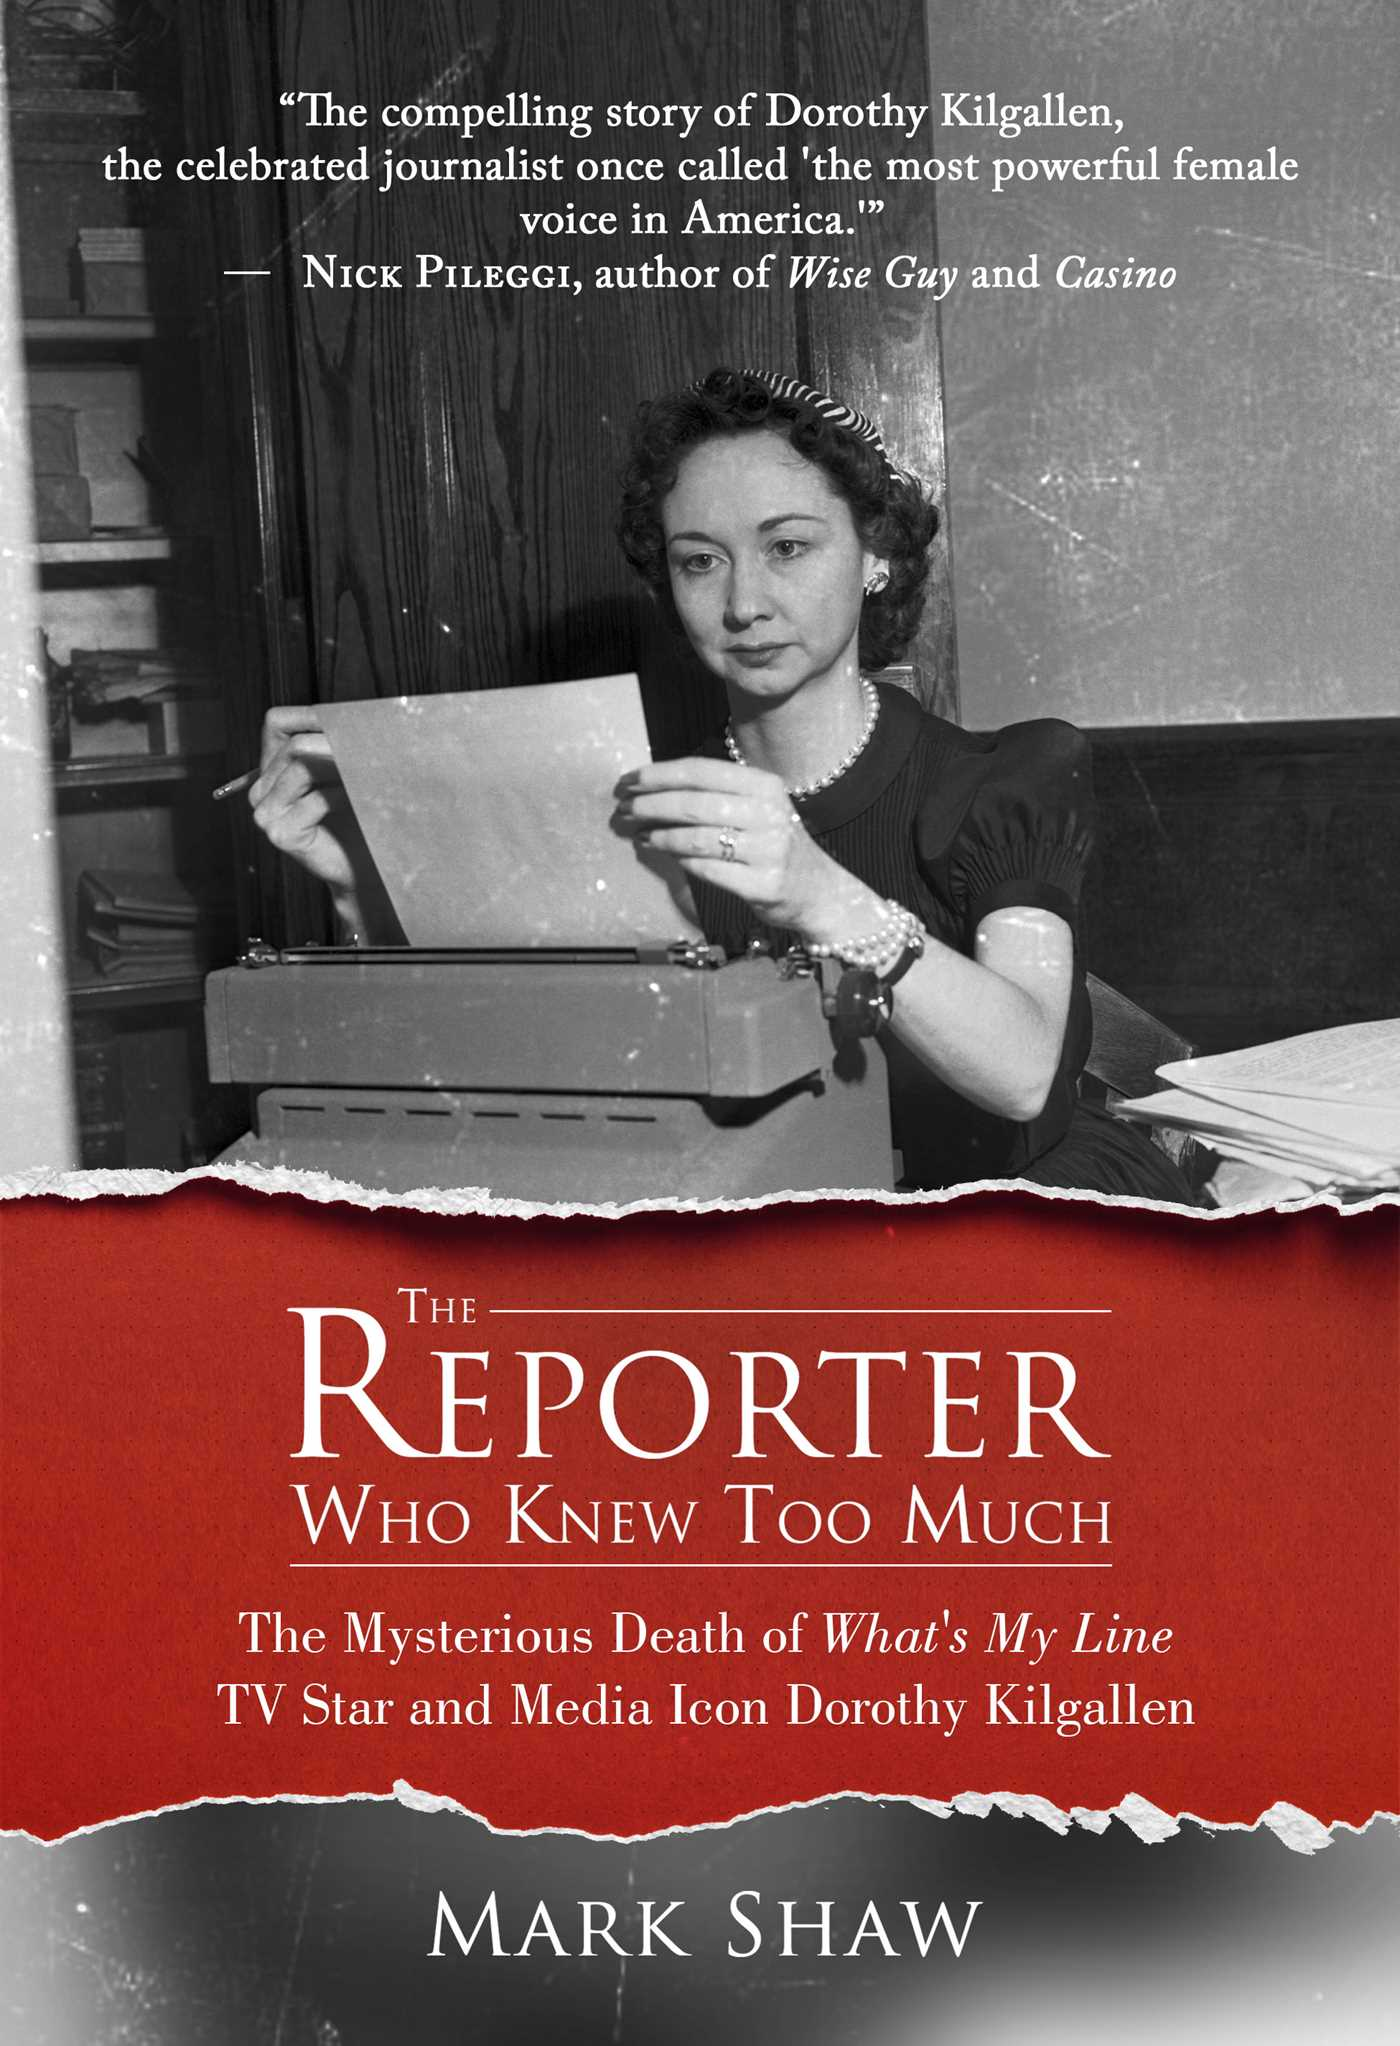 The reporter who knew too much 9781682610978 hr